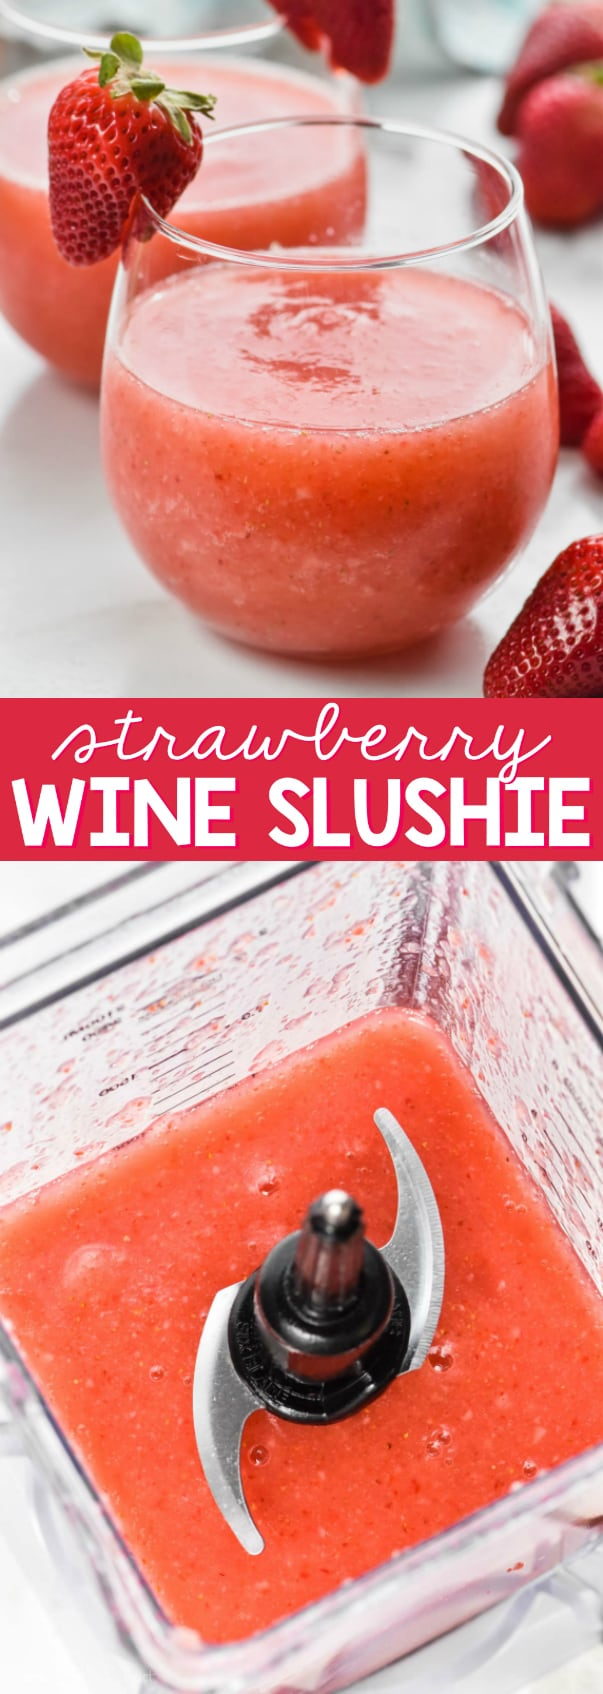 glass of strawberry wine slushie